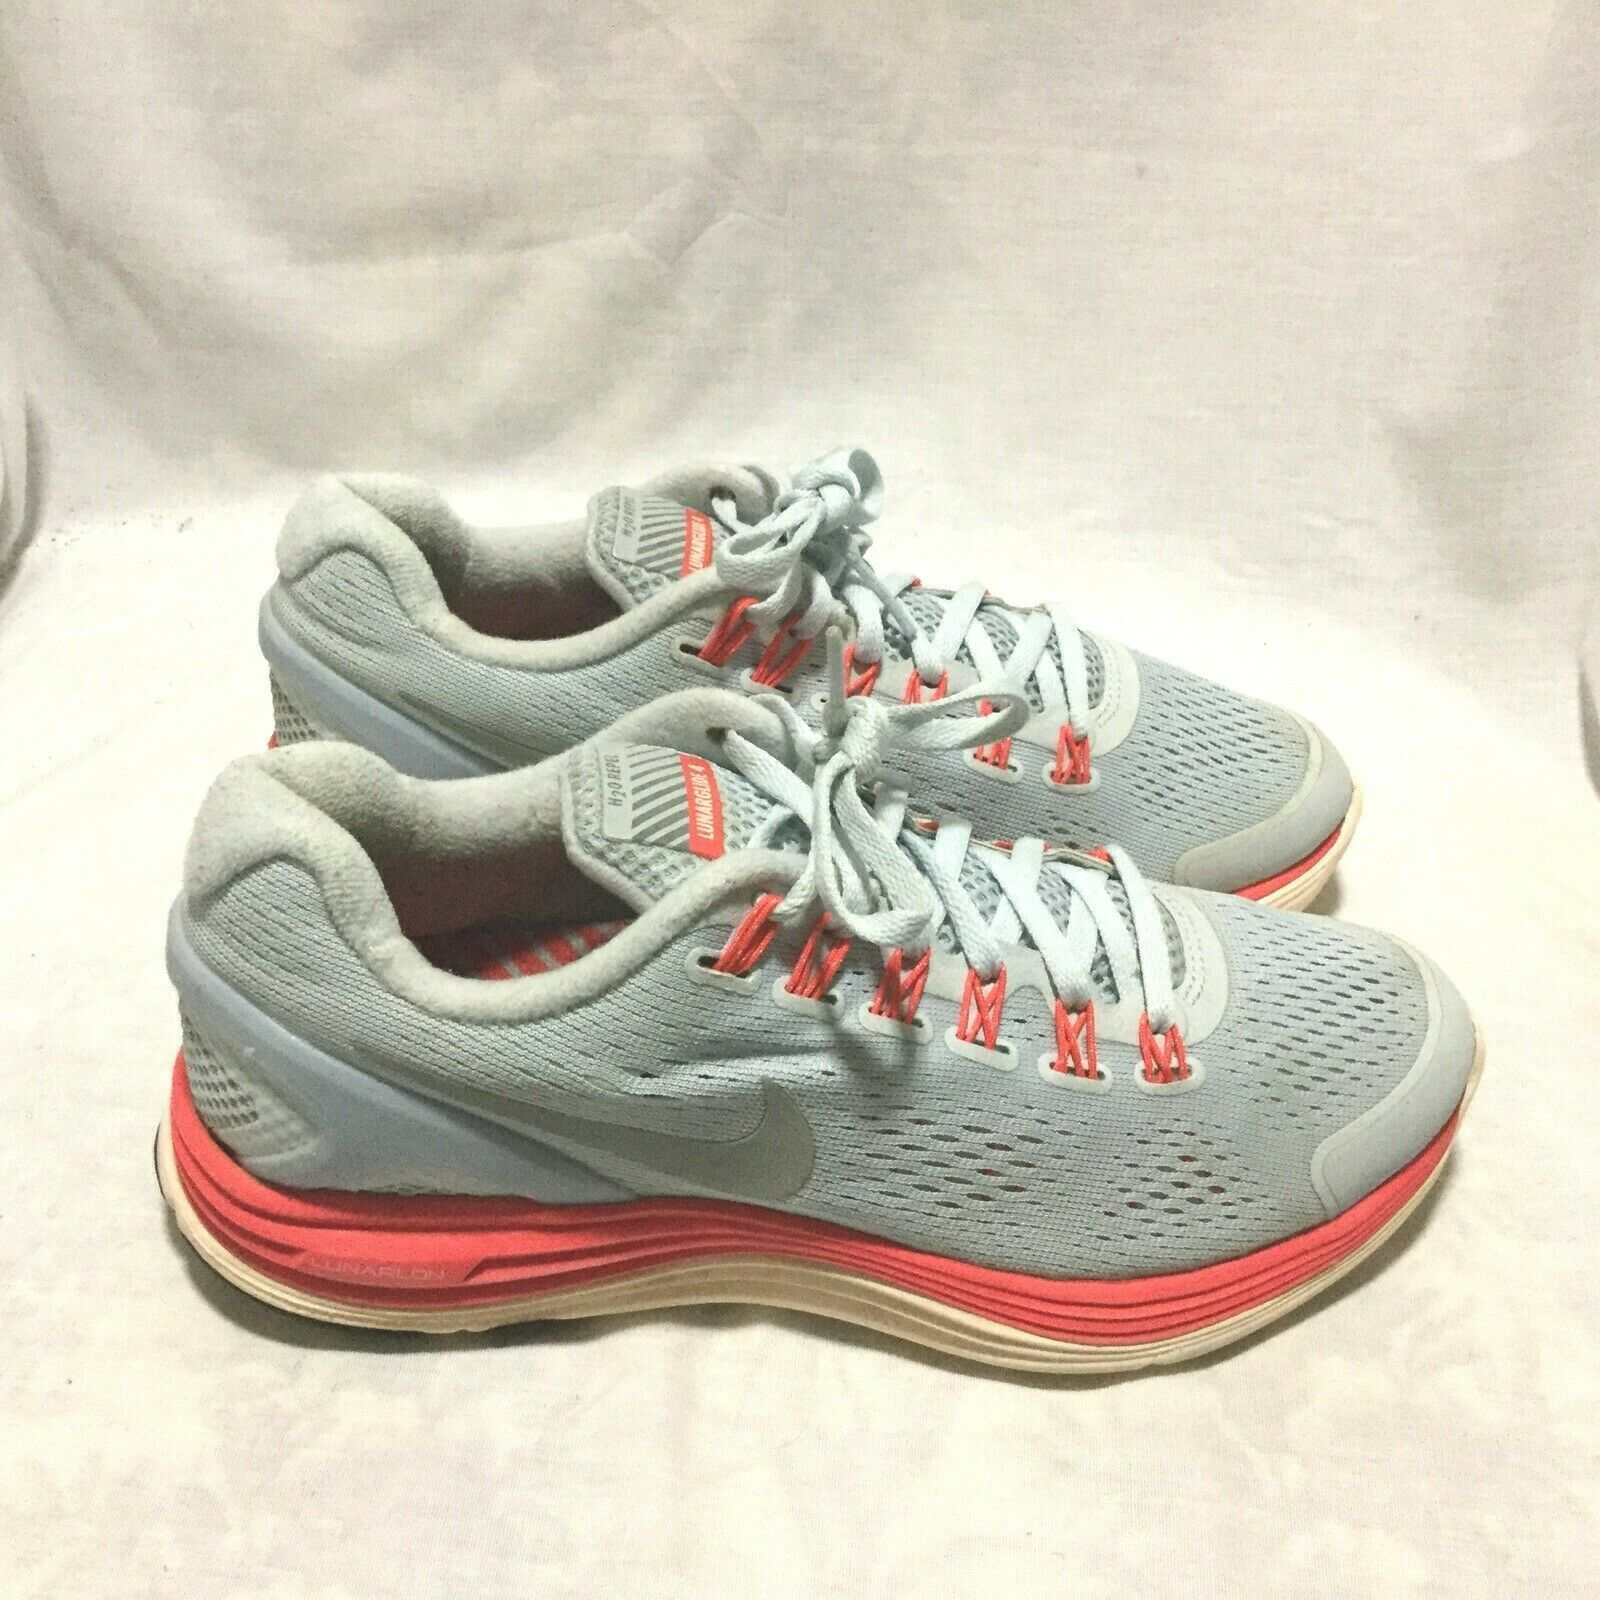 NIKE LUNARGLIDE 4 H20 REPEL RUNNING SHOES ( SIZE 7 ) WOMEN'S